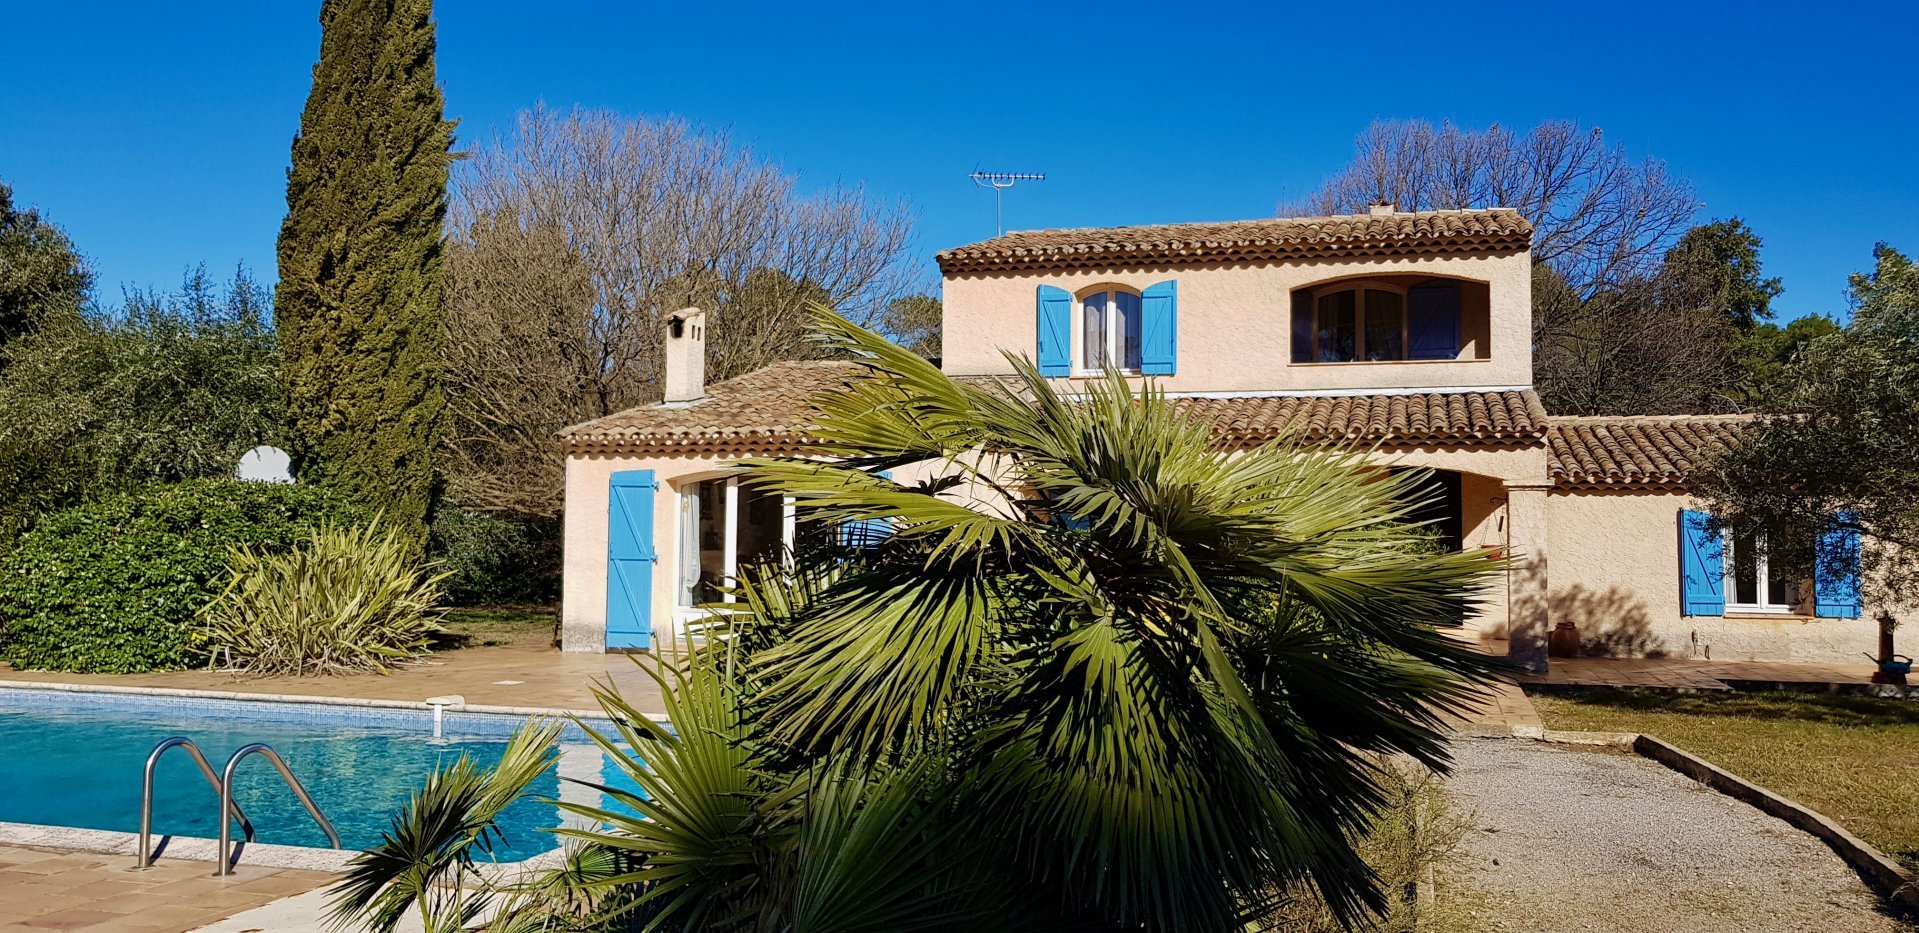 UNDER CONTRACT     Provençale villa situated in a quiet area of Lorgues